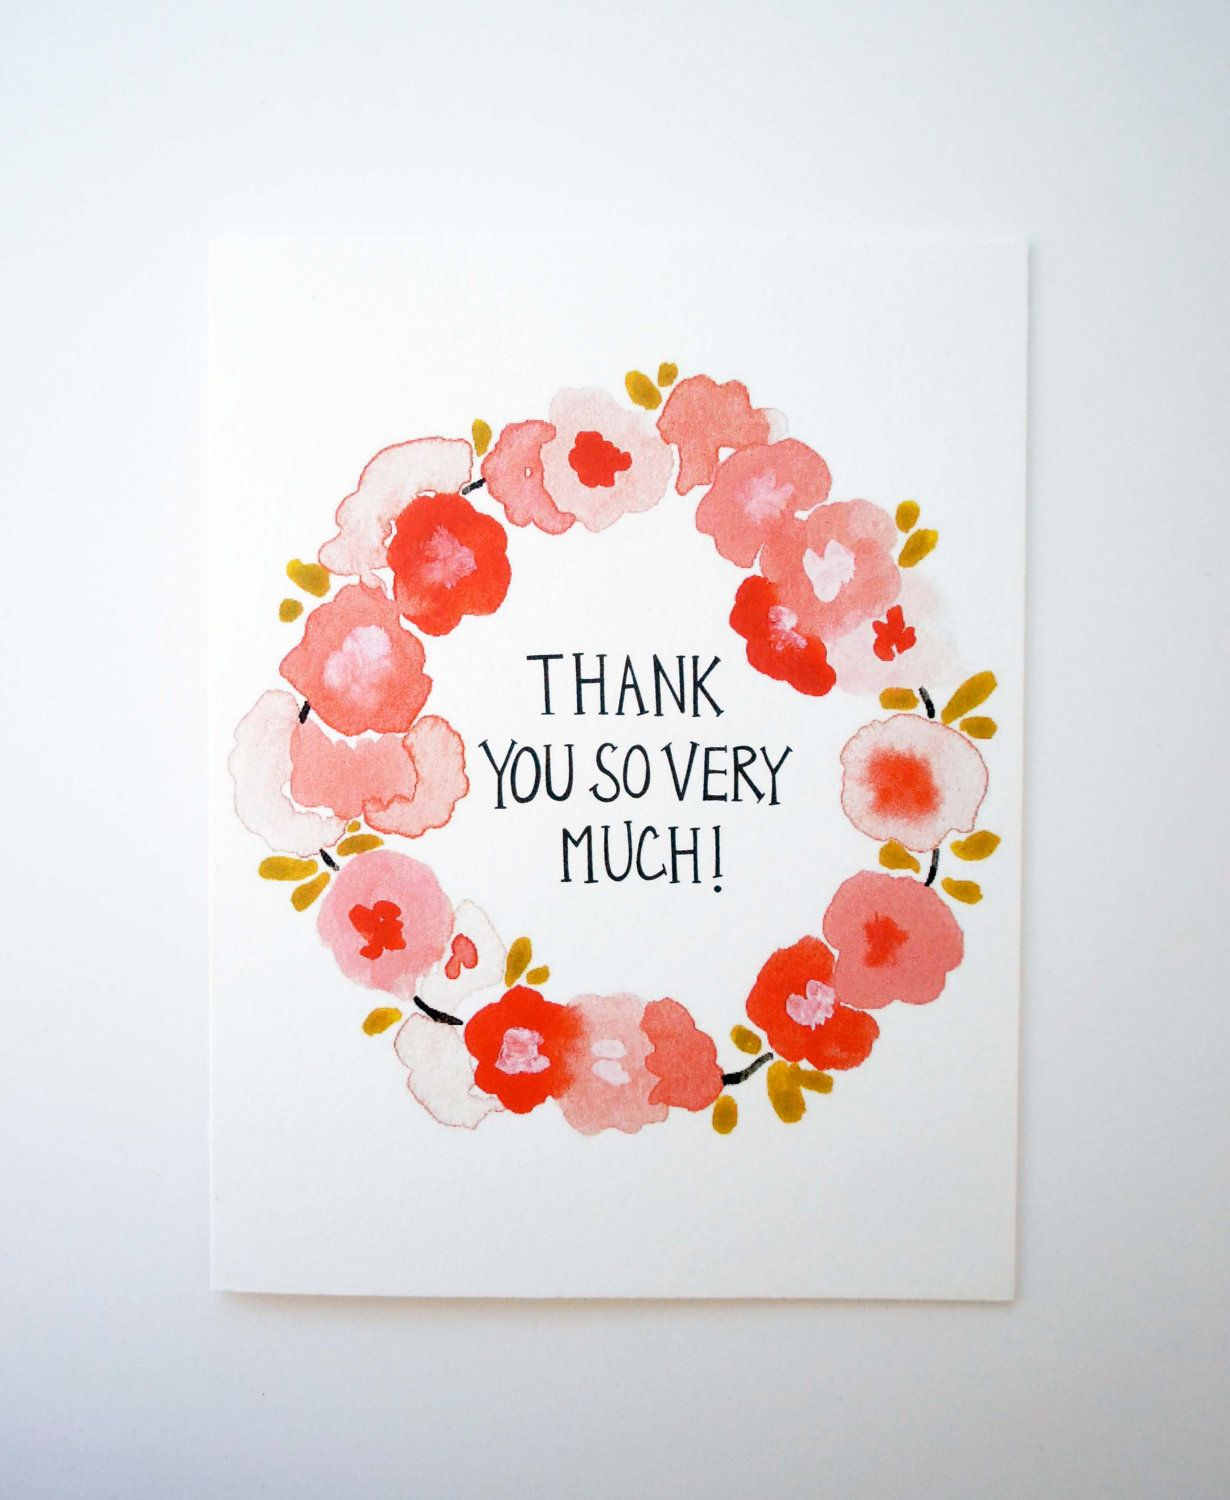 Thank you so very much card envelope envelopes thank you so very much card envelope par katespapergoods sur etsy kristyandbryce Choice Image